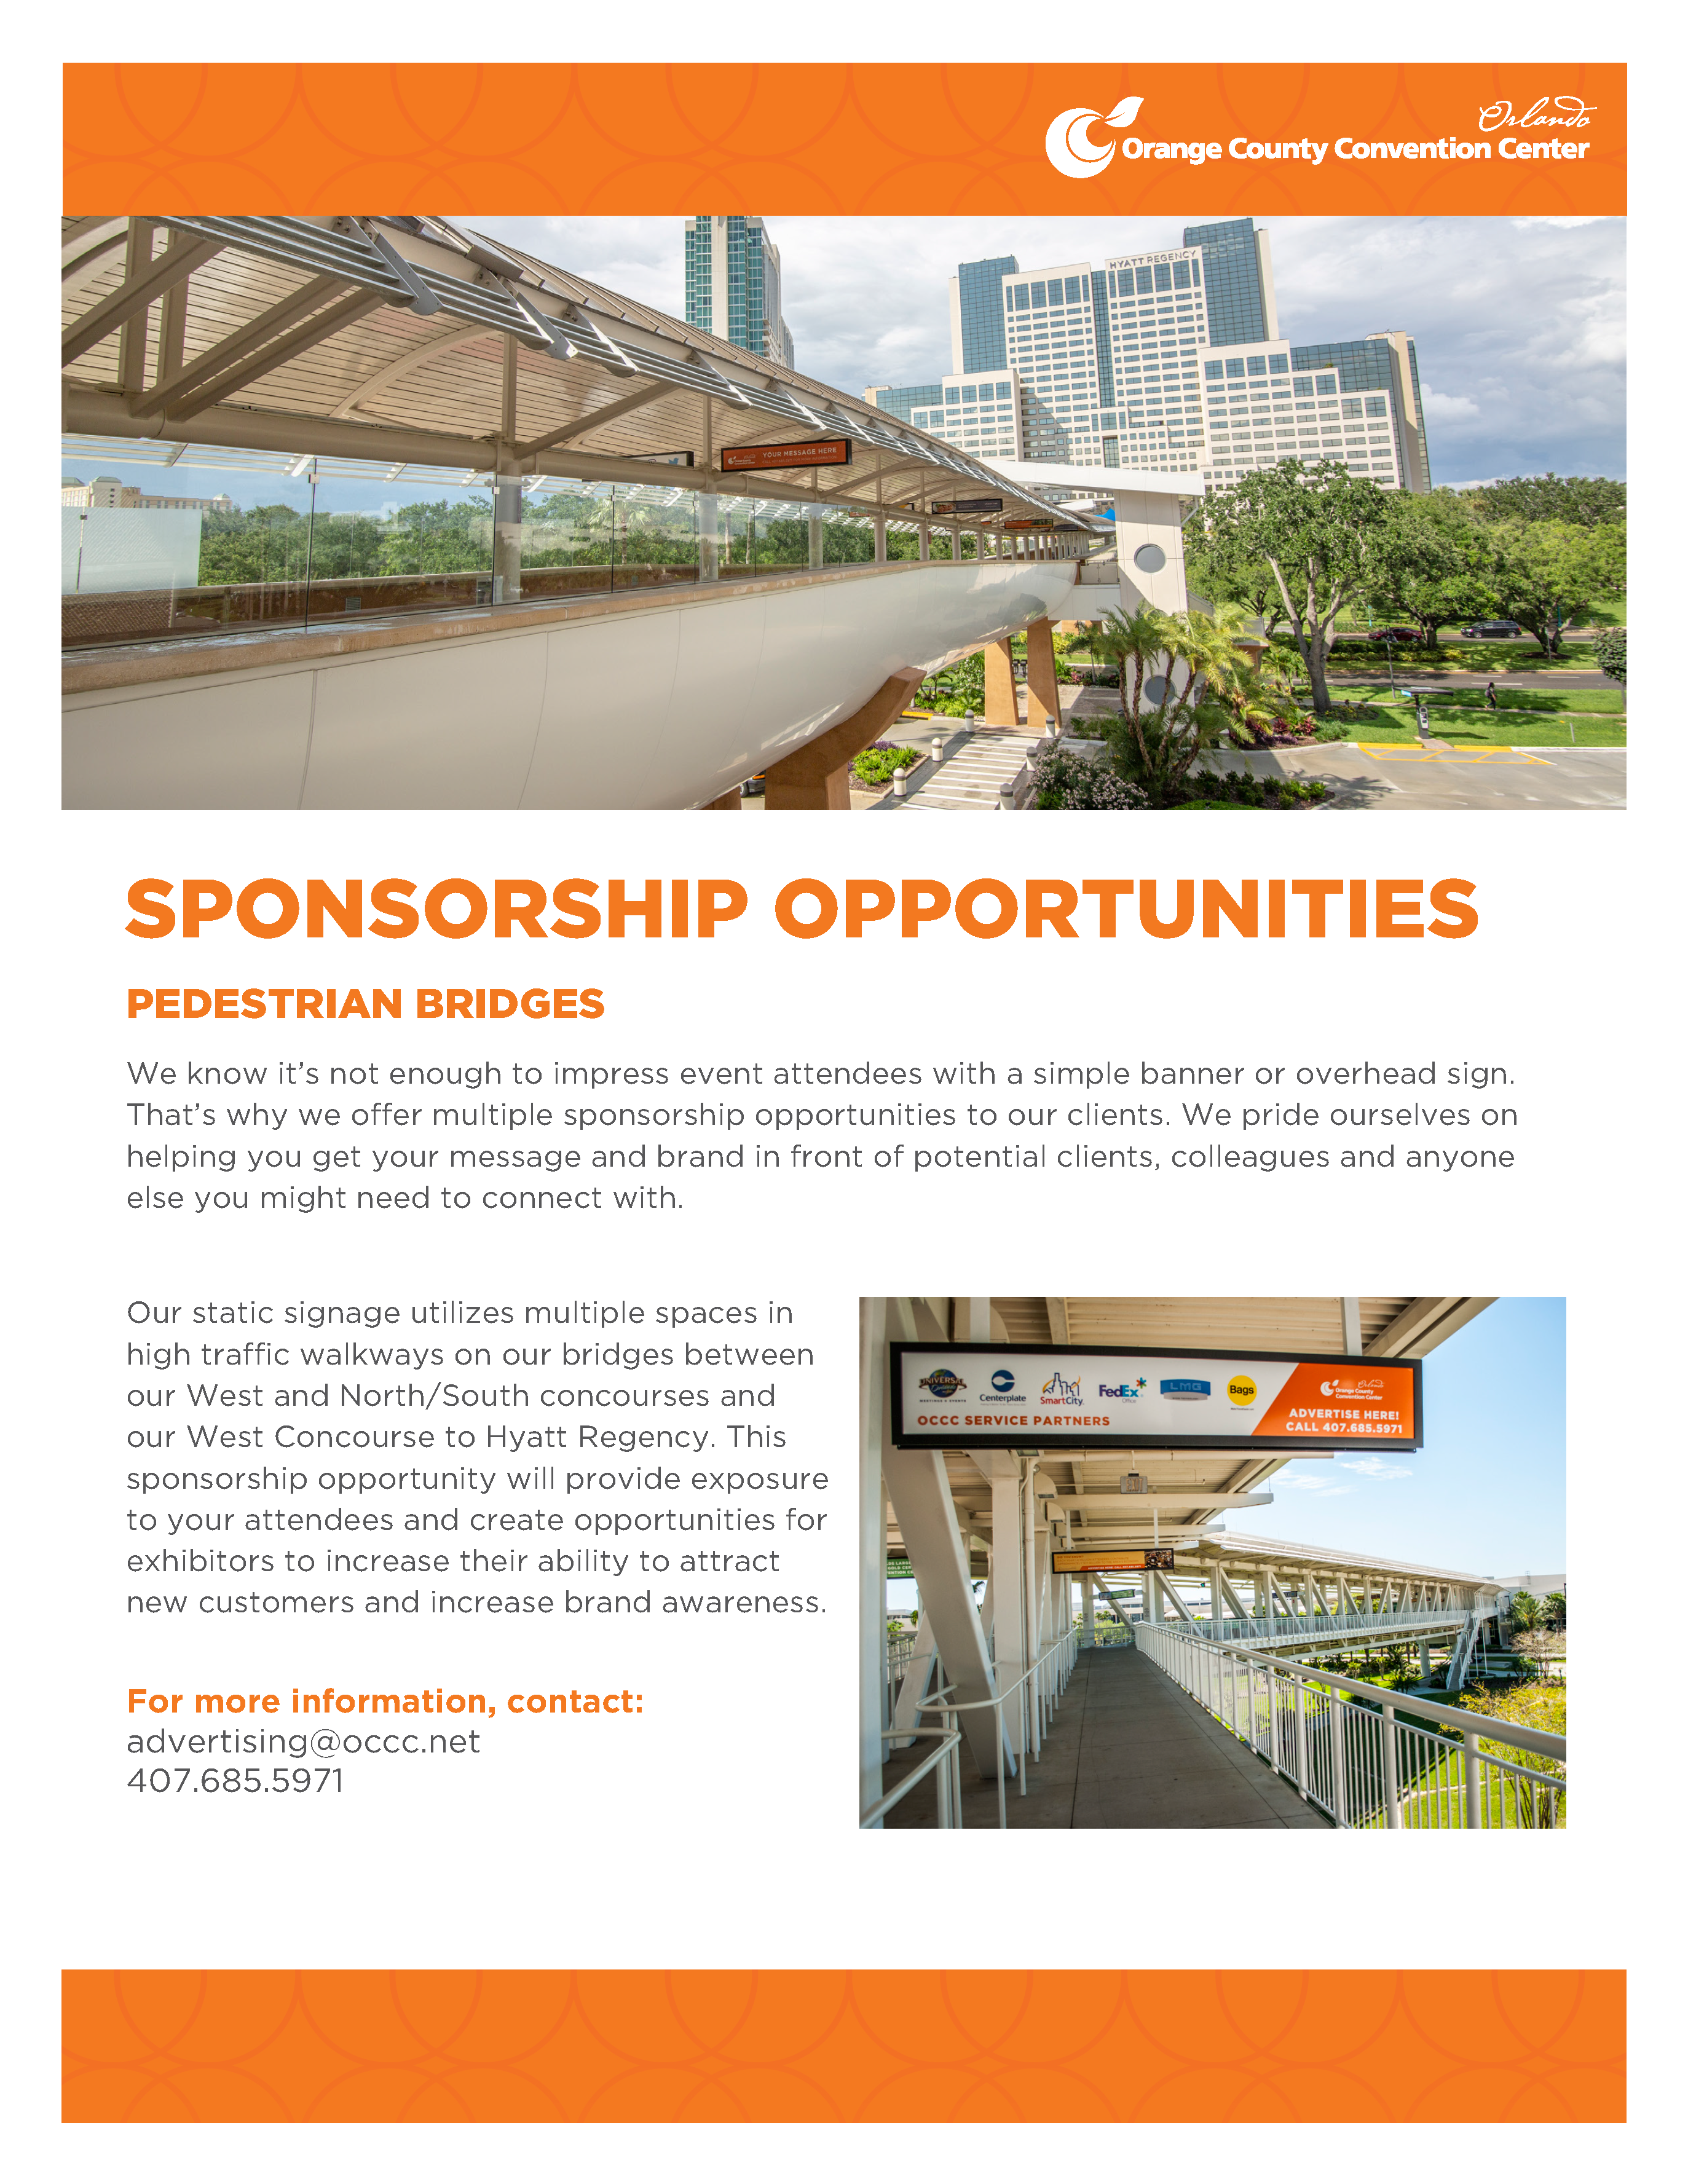 Sponsorship Opportunities - Pedestrian Bridges PDF cover